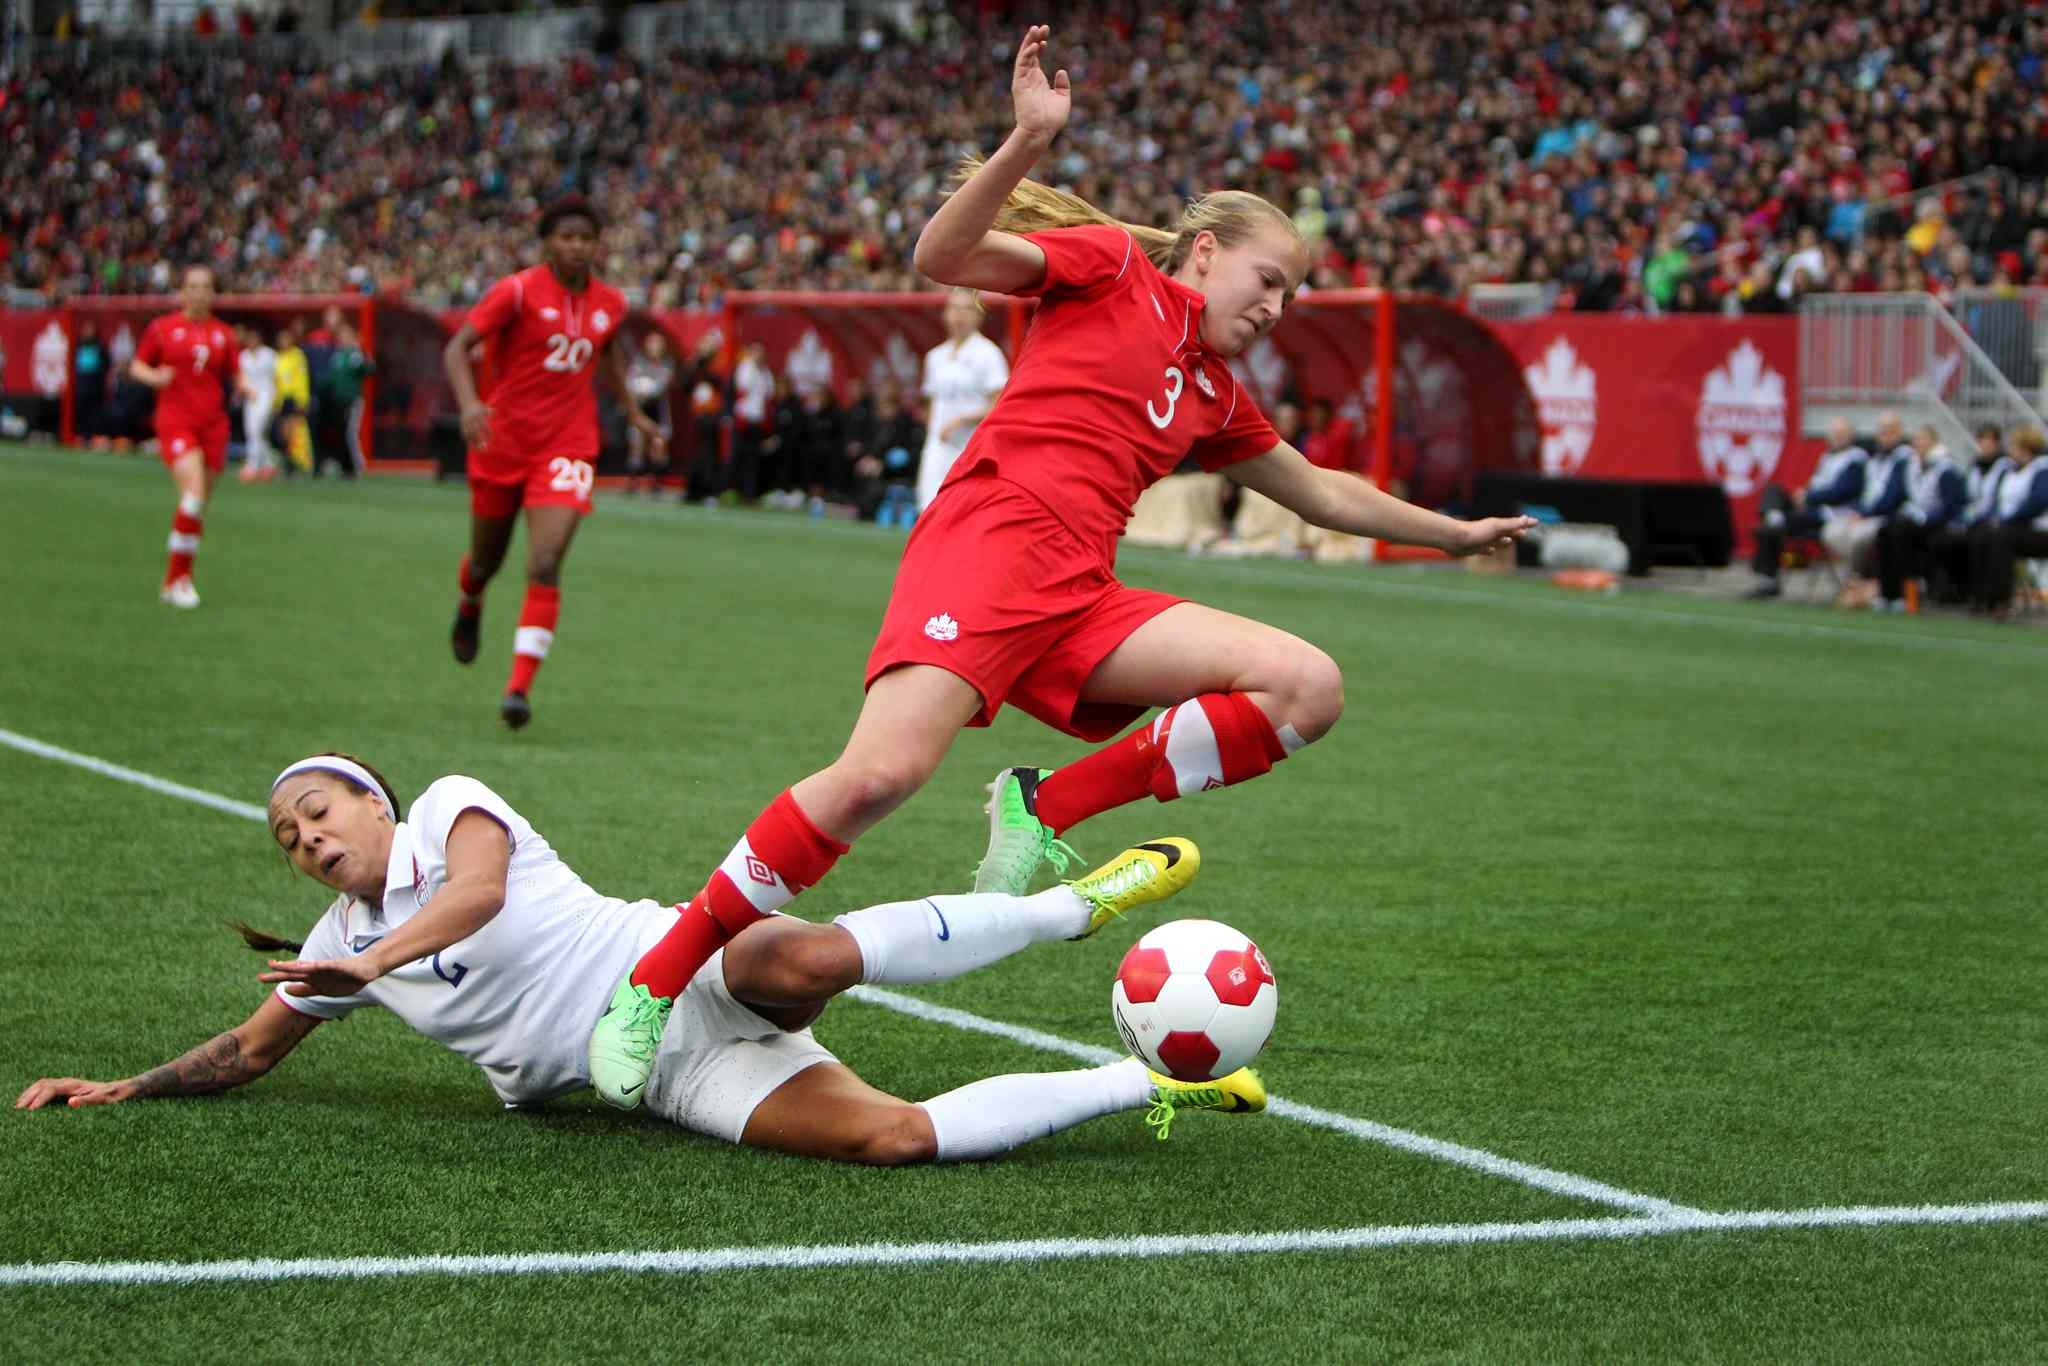 Canada's Rebecca Quinn (#3) and USA's Sydney Leroux (#2) collide while scrambling for the ball during the first half of Thursday's game at Investors Group Field.